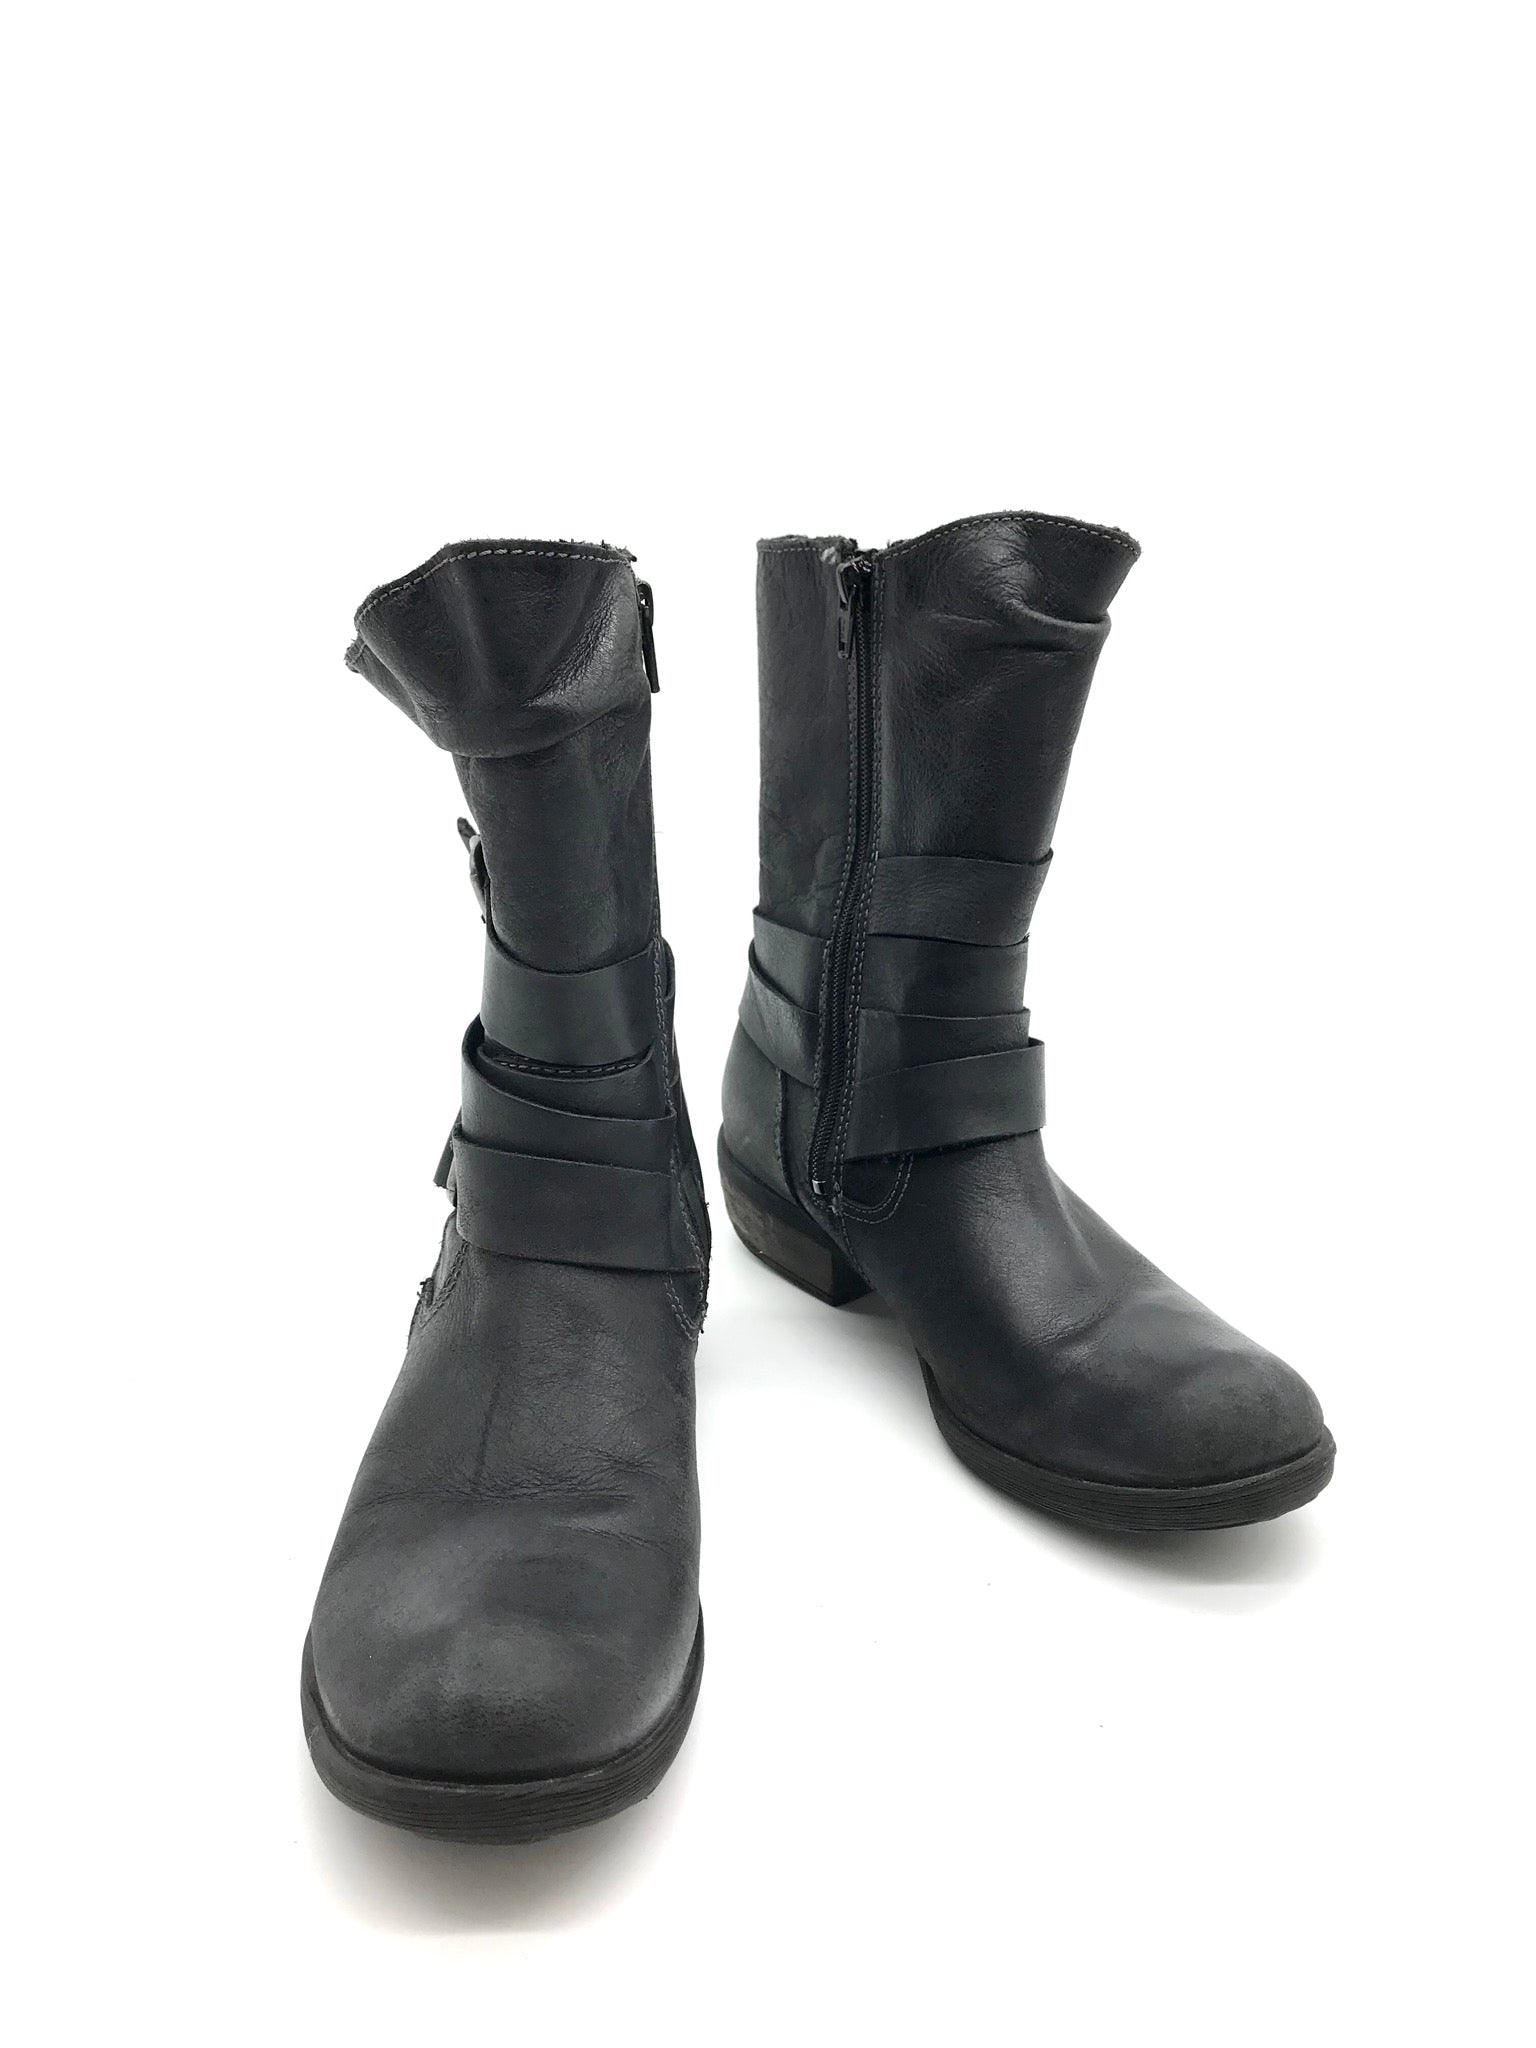 Primary Photo - BRAND: BOC <BR>STYLE: BOOTS ANKLE <BR>COLOR: BLACK <BR>SIZE: 7 <BR>SKU: 262-26275-69243<BR>AS IS